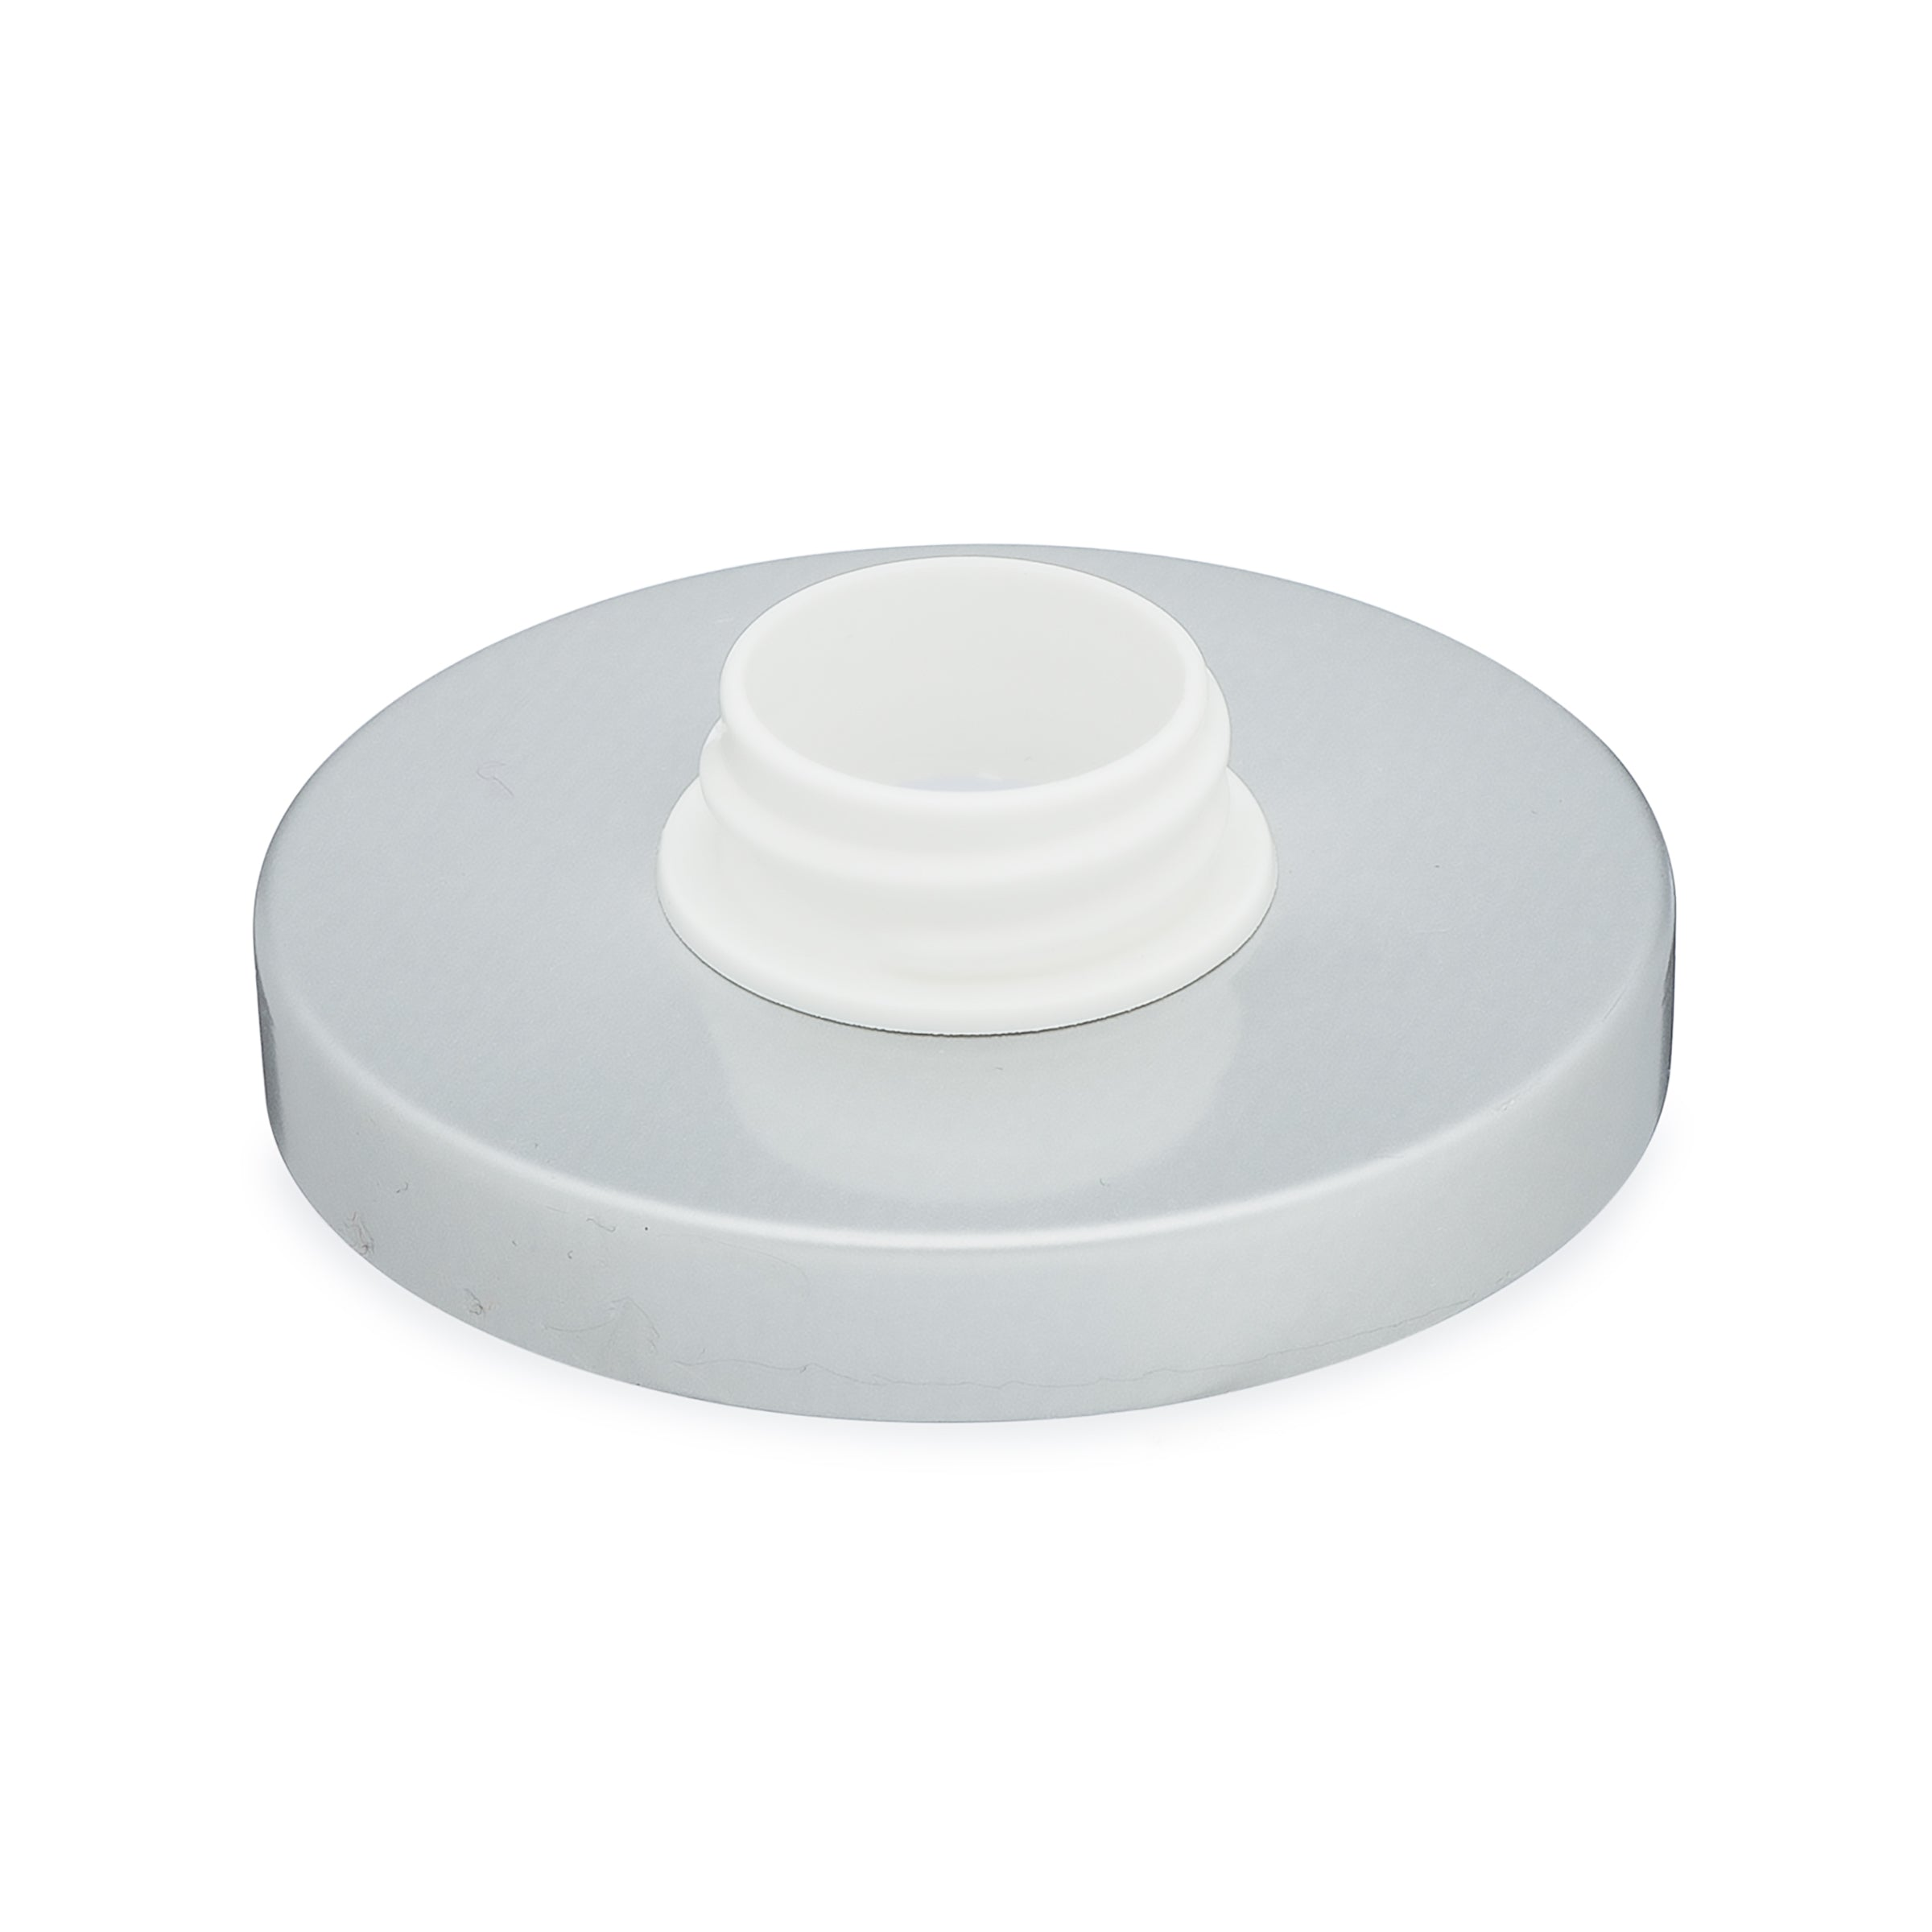 28-400/70-400 Metal Adaptor Cap